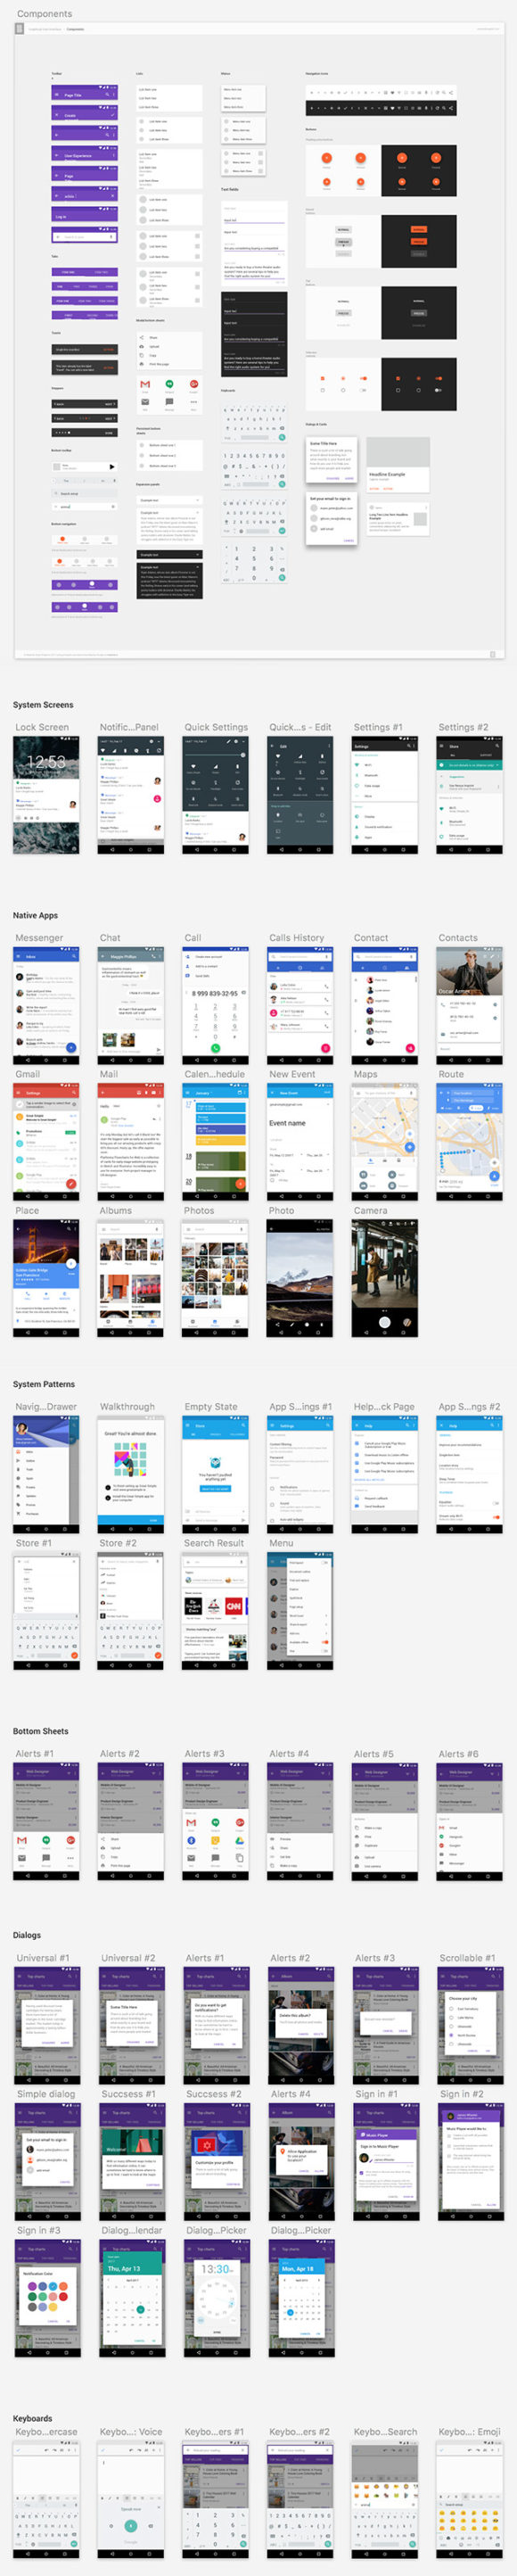 Android Nougat free UI kit - Full preview